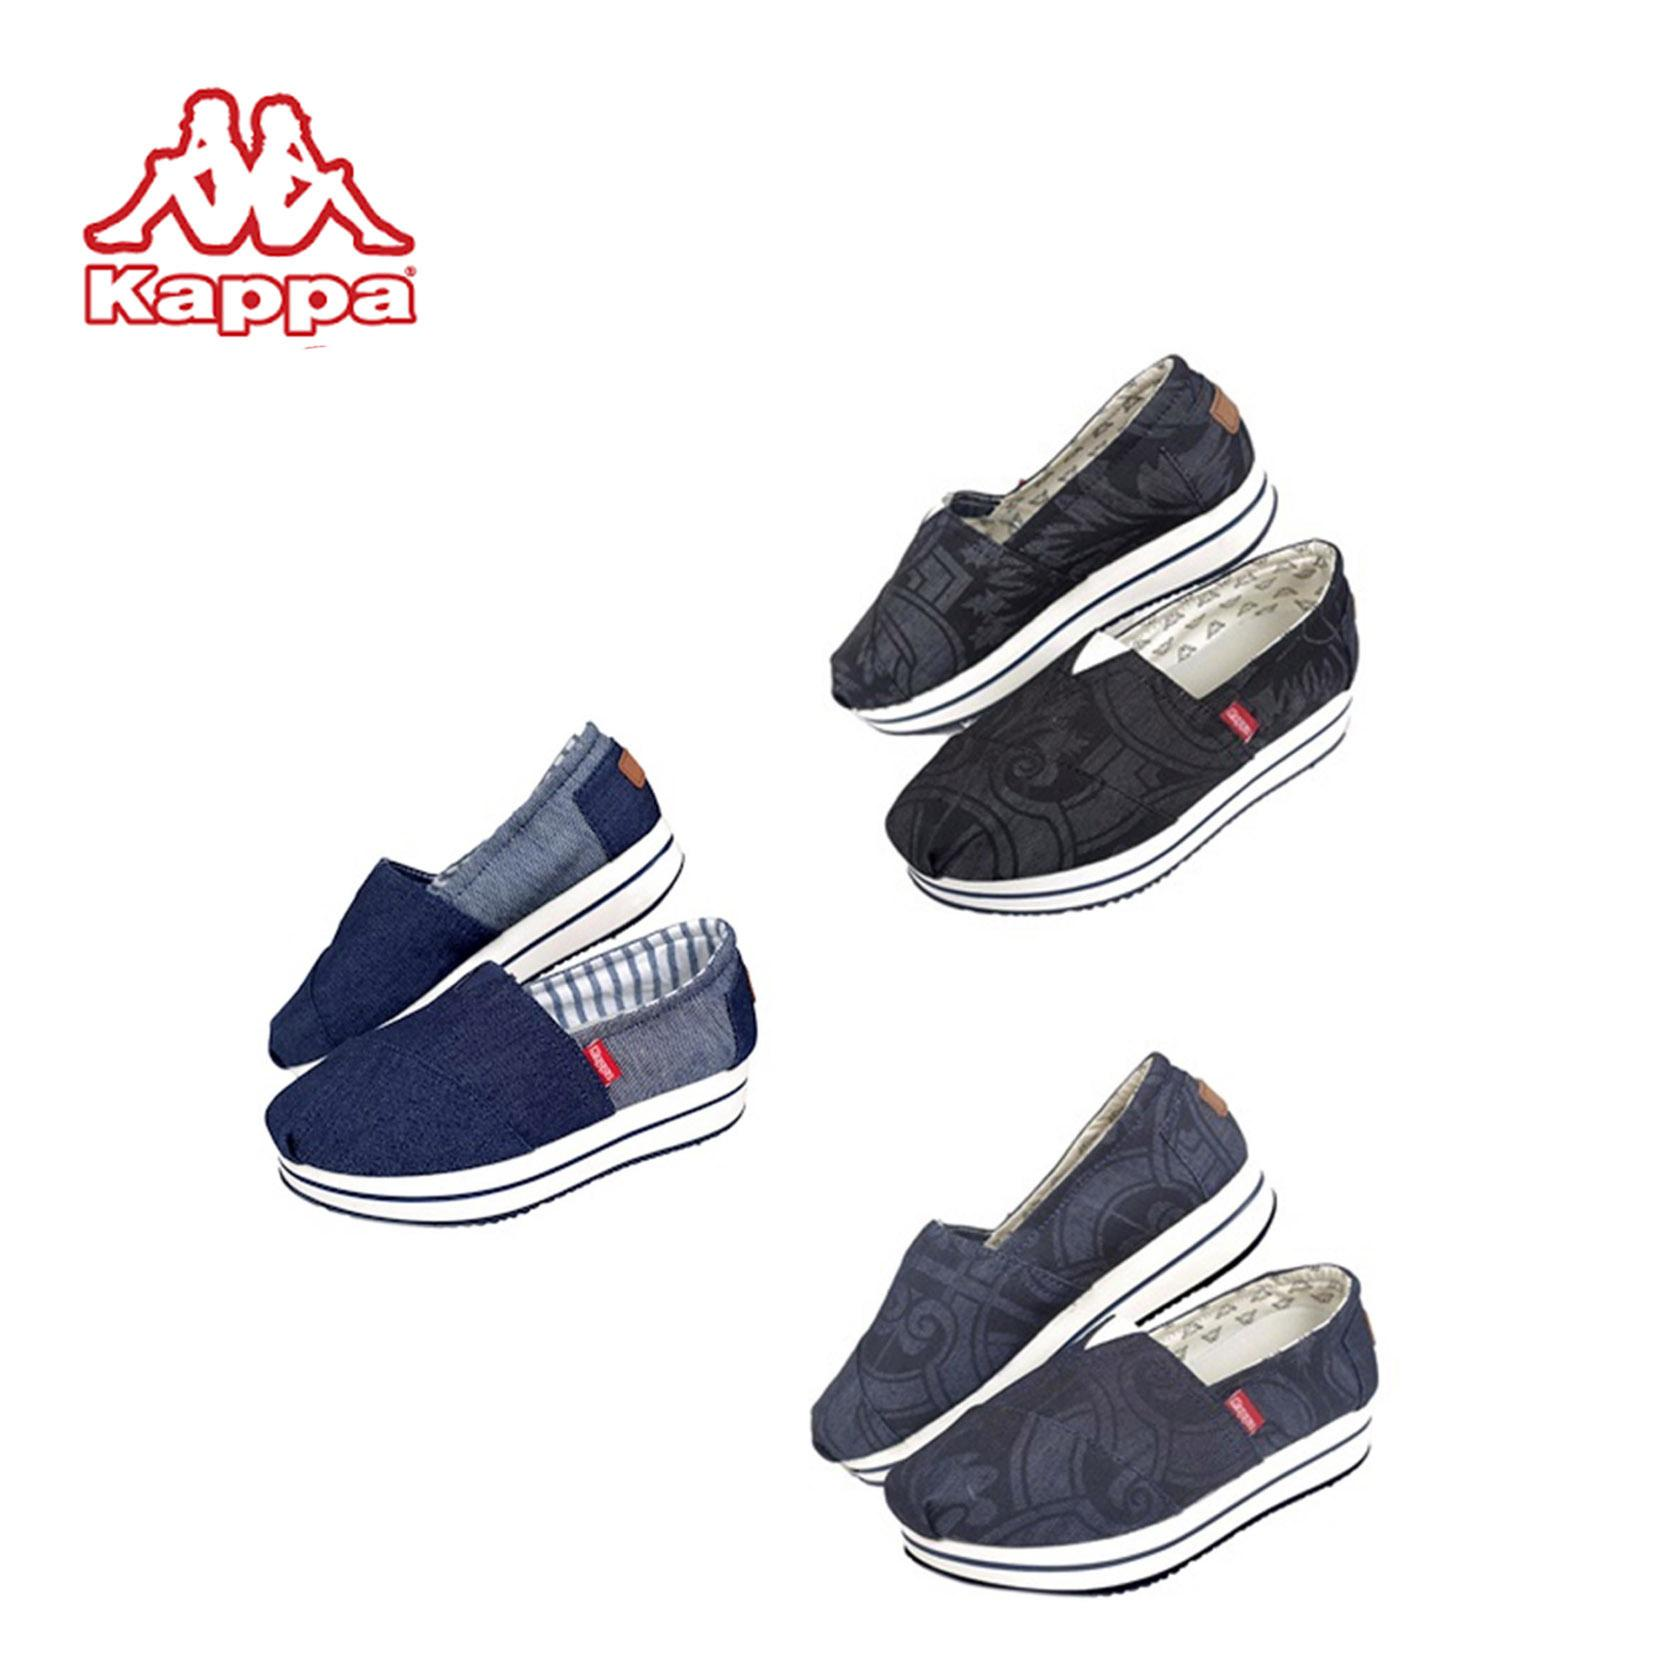 0f2b616250 Buy Kappa Ladies Canvas Shoes | Kappa | Lazada.sg